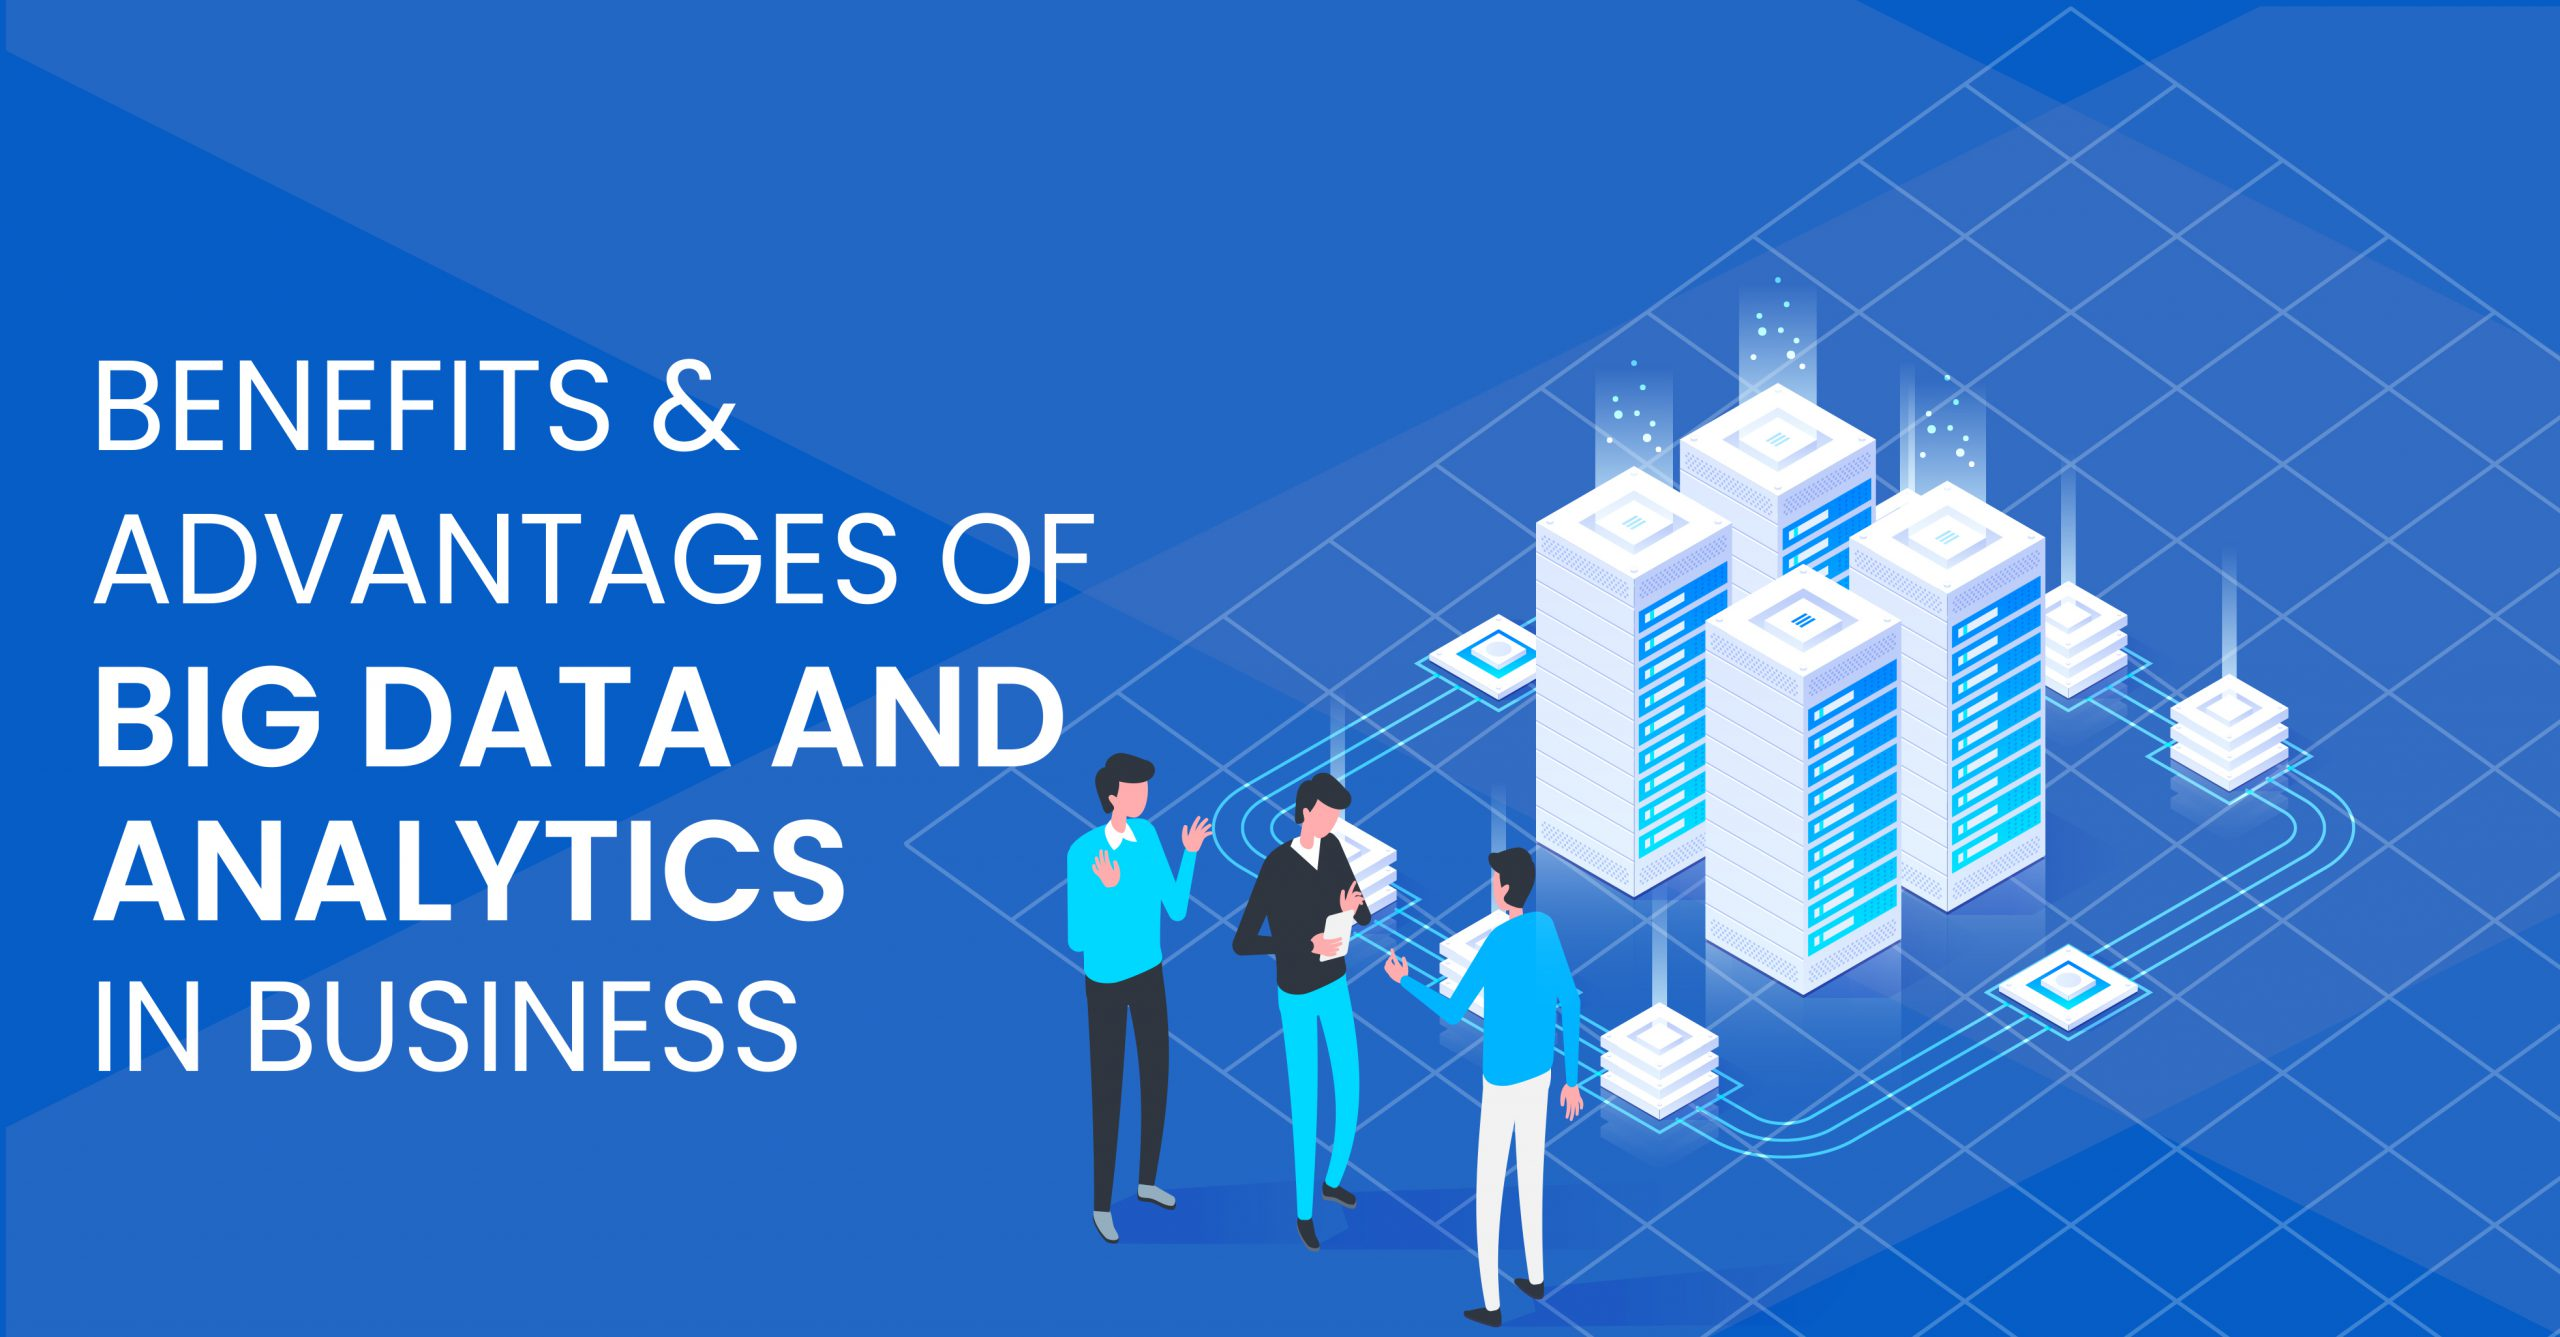 benefits-and-advantages-of-big-data-analytics-in-business